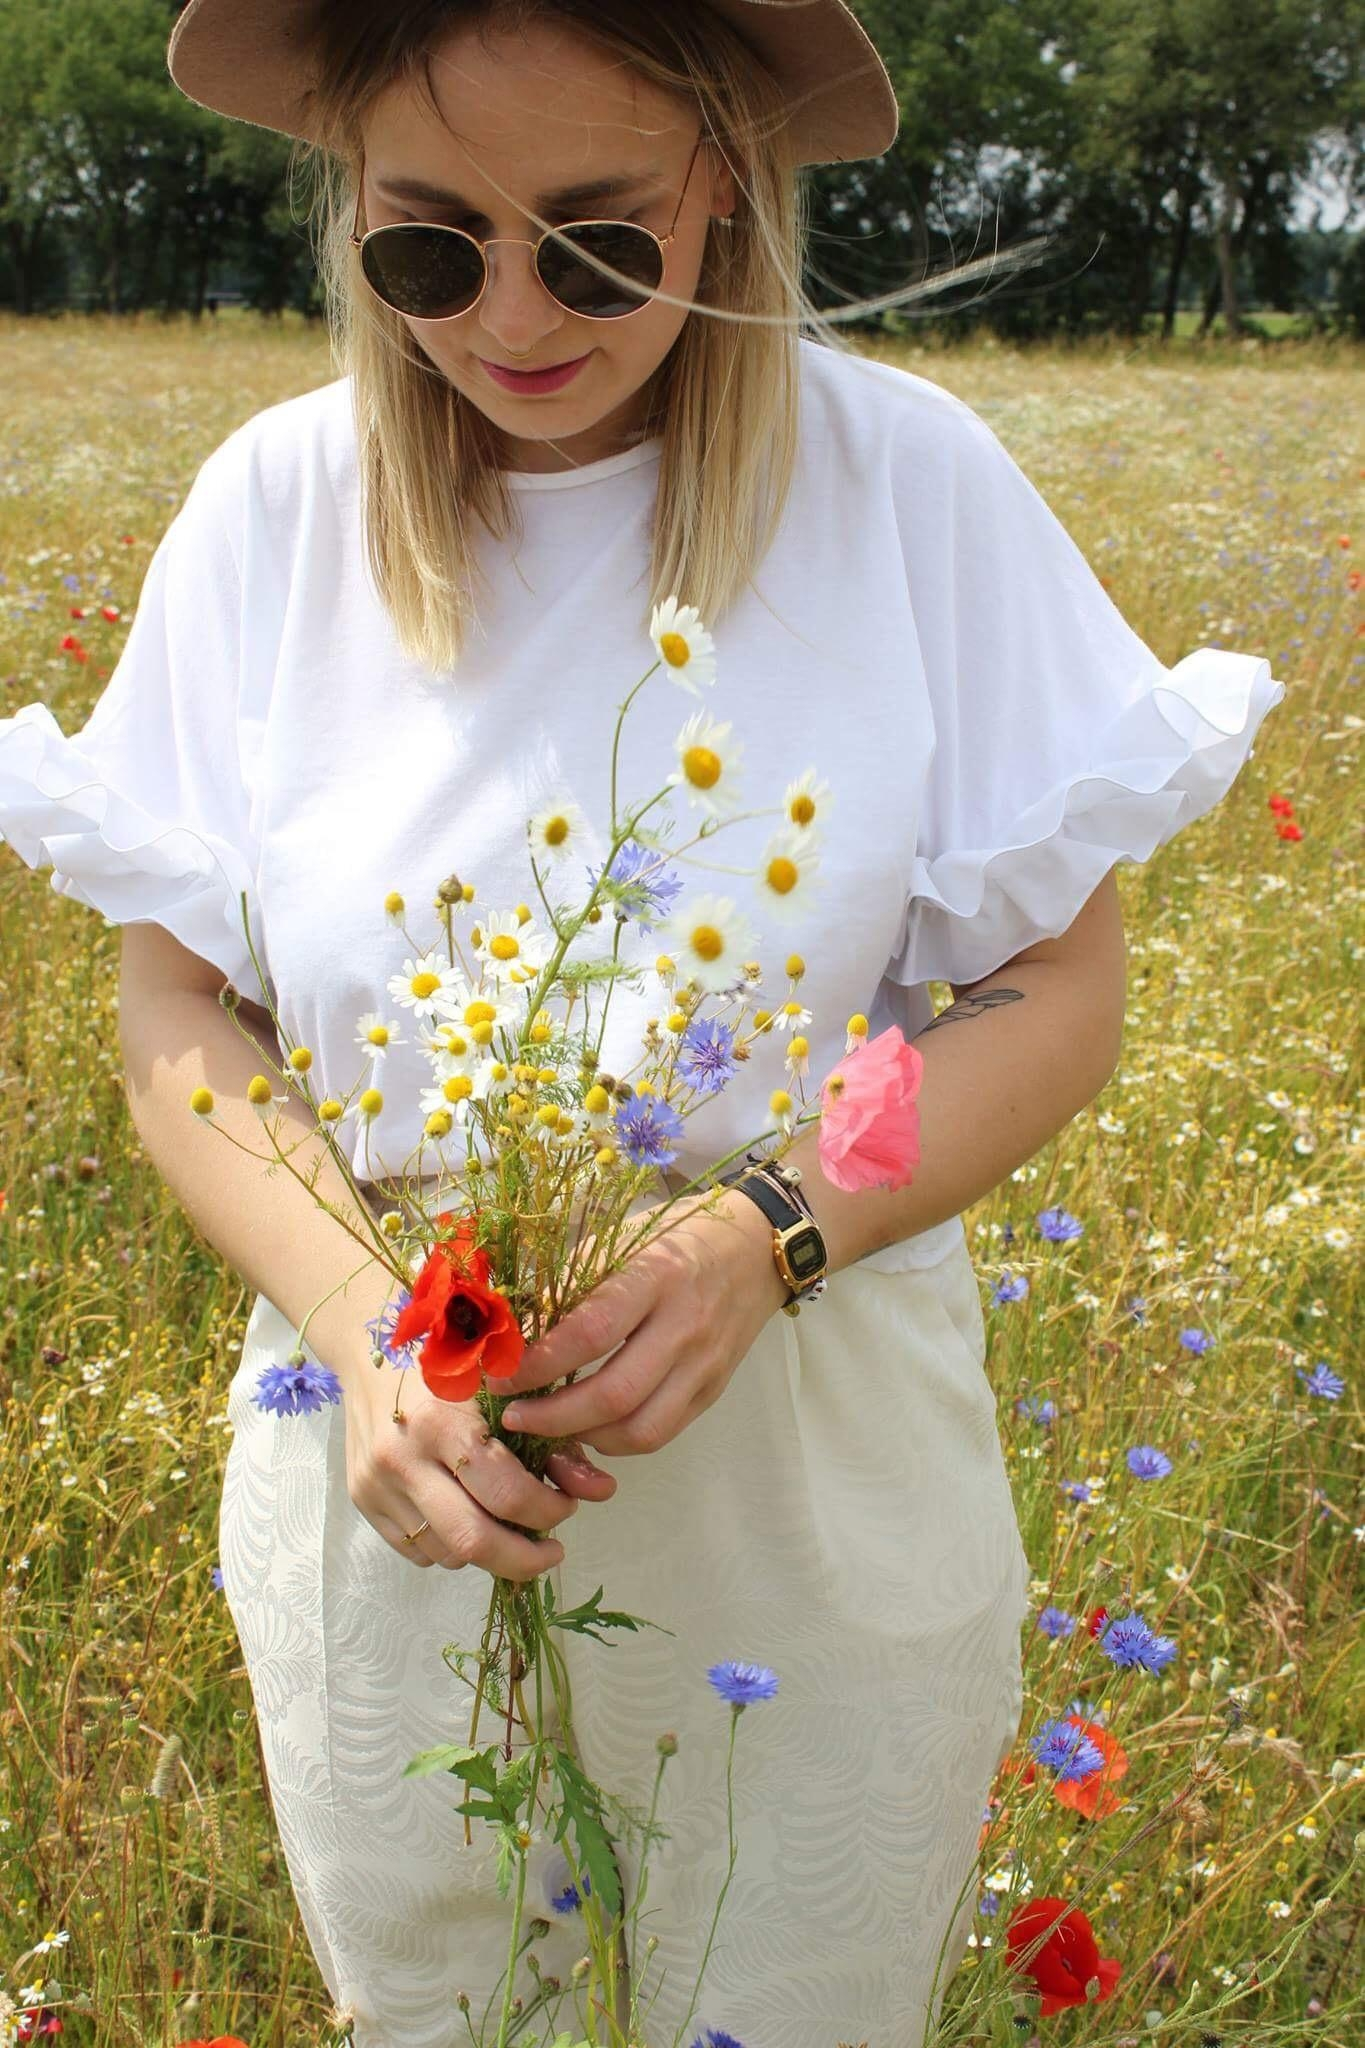 Happy Saturday 🌼